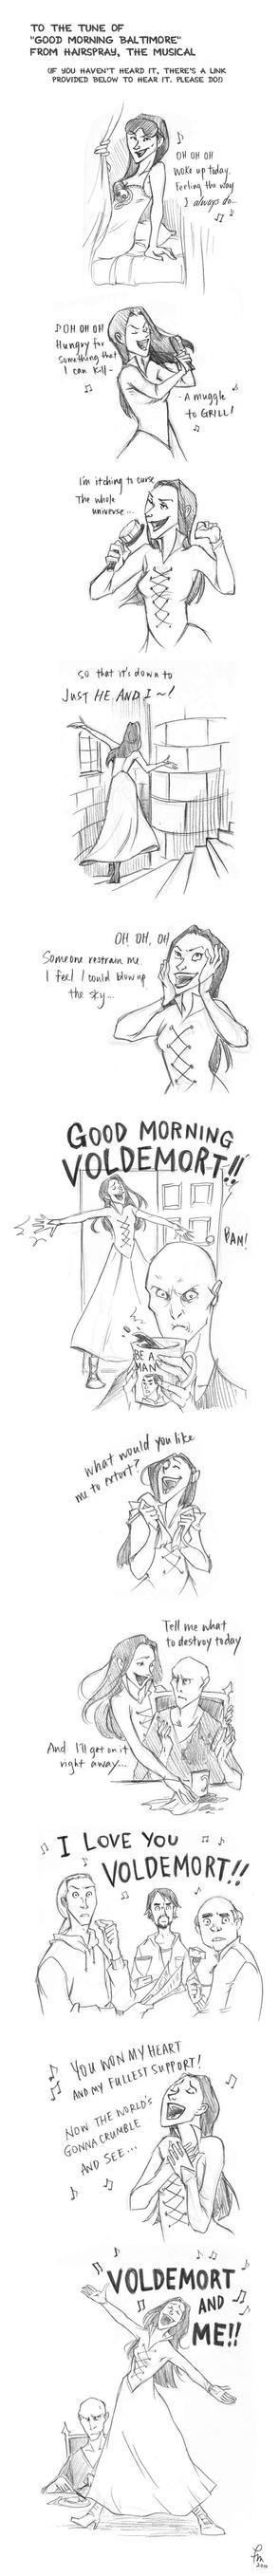 Good Morning Voldemort by flominowa